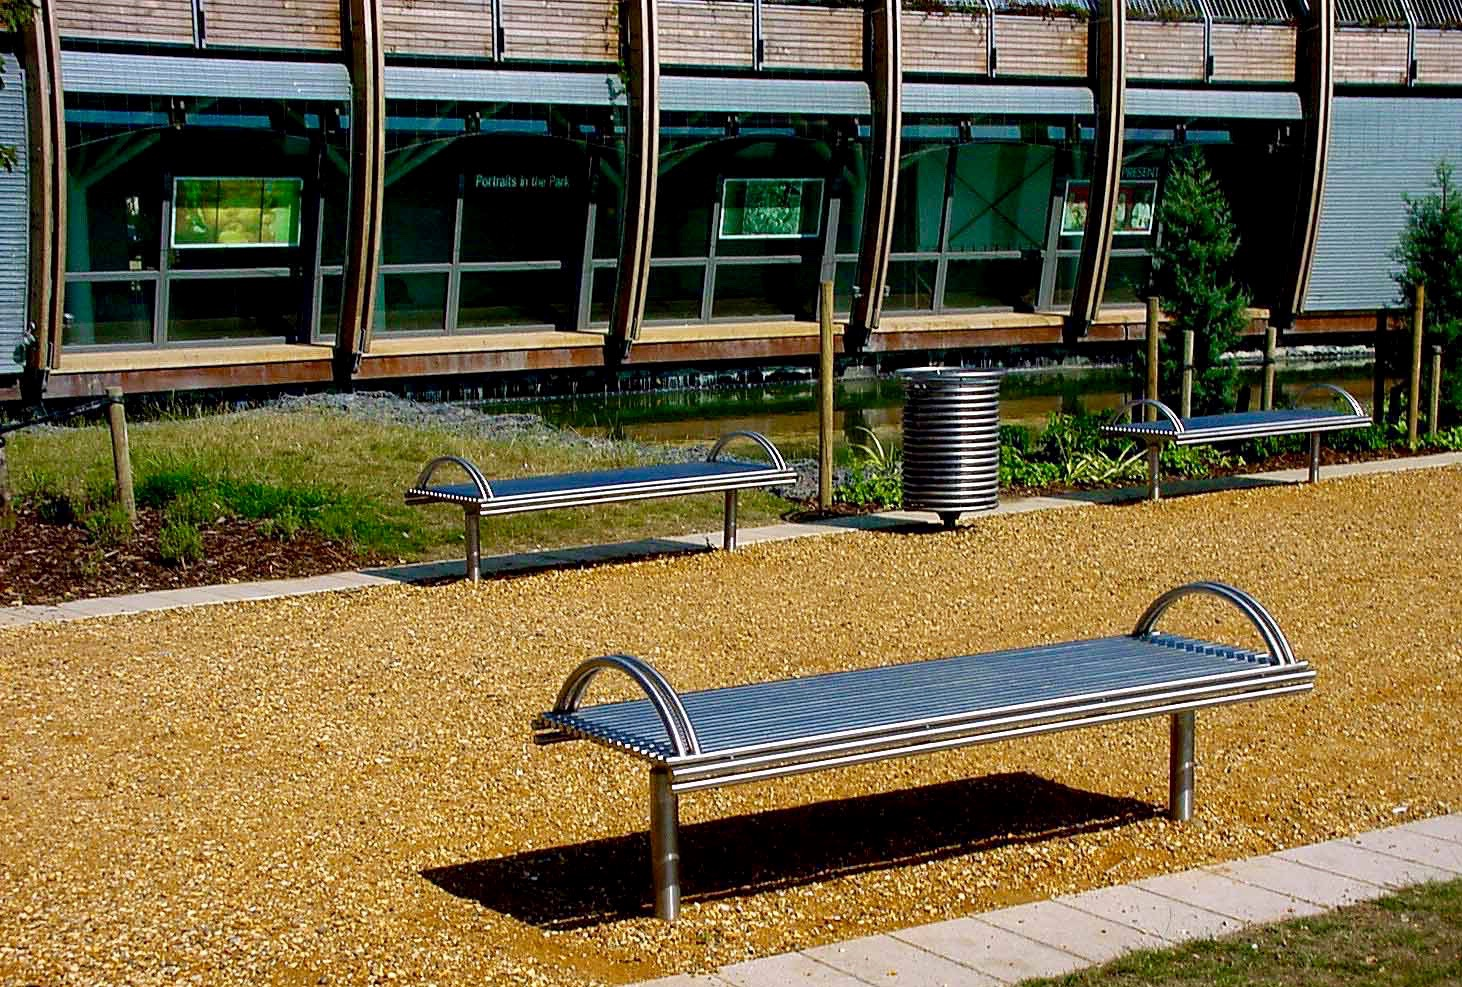 Centerline street furniture, CL005 bench, made from 316 stainless steel.